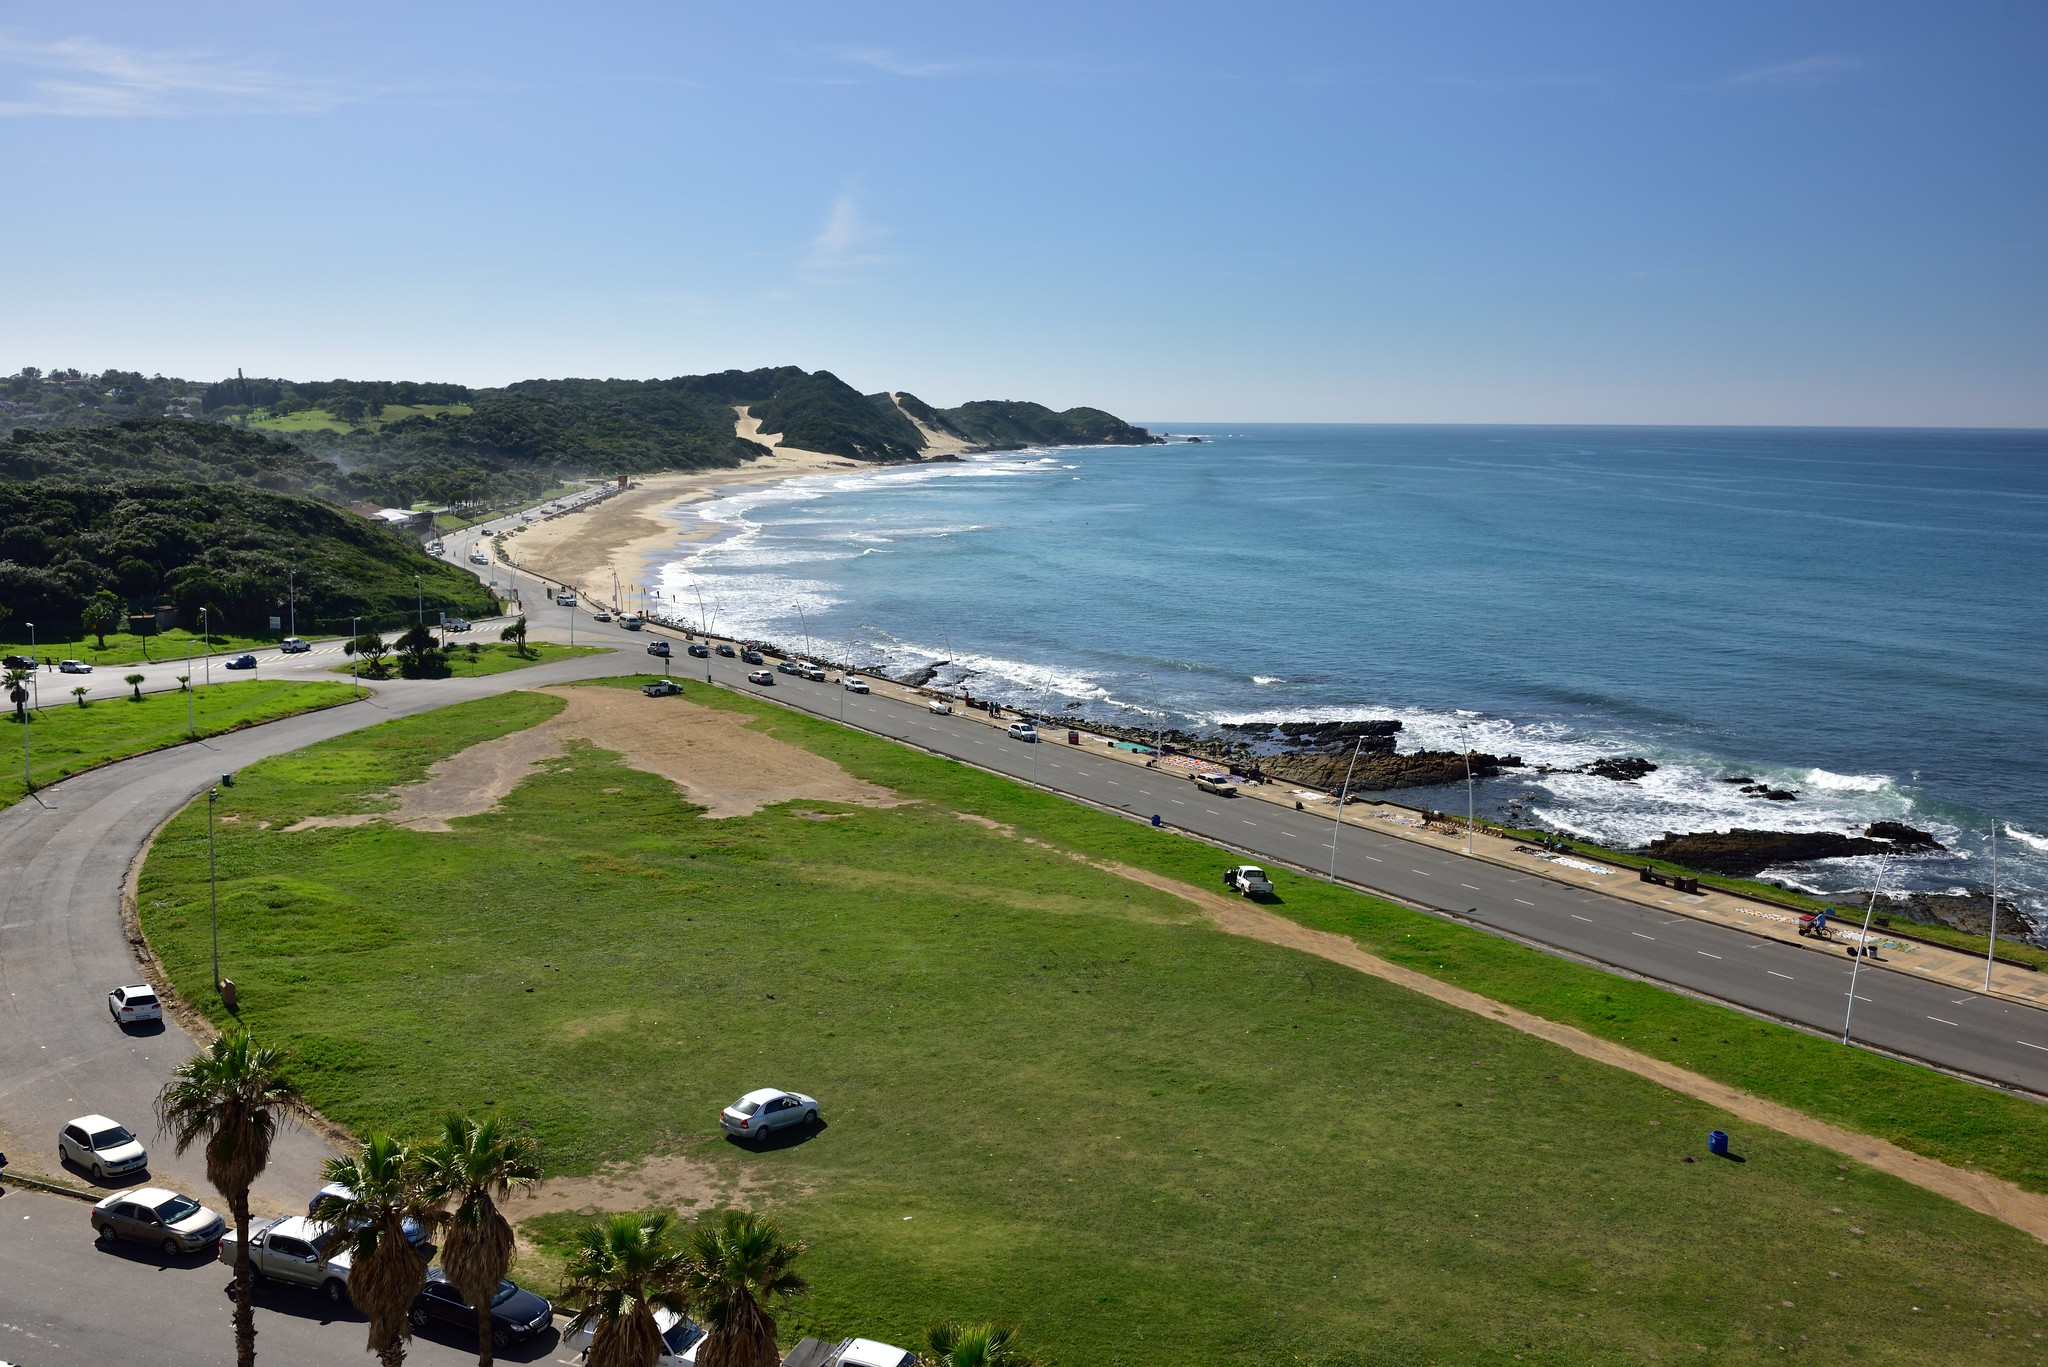 11 Things To Do in East London and George, Eastern Cape [South Africa Itinerary]